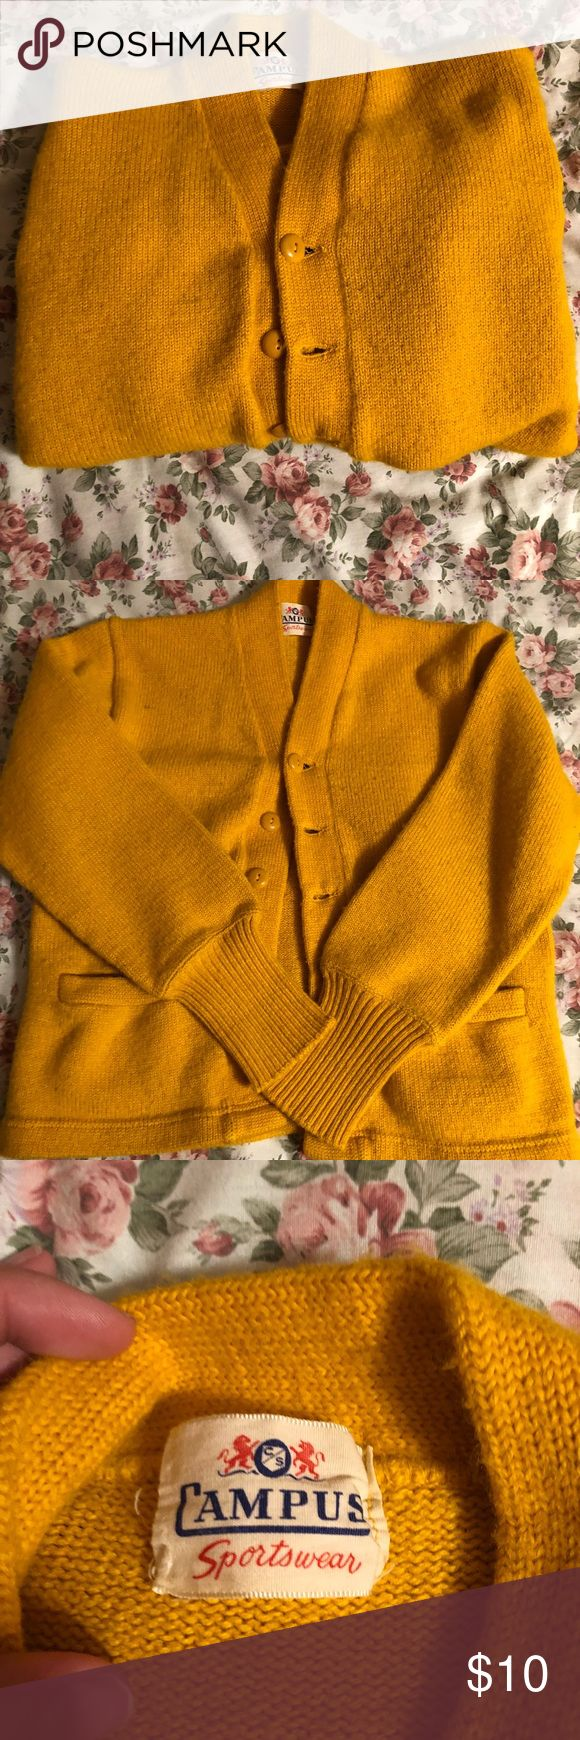 Vintage Yellow/Gold Cardigan Does not list a size but I would say a small or medium. In great condition no marks or stains. SO cute on! Vintage Sweaters Cardigans